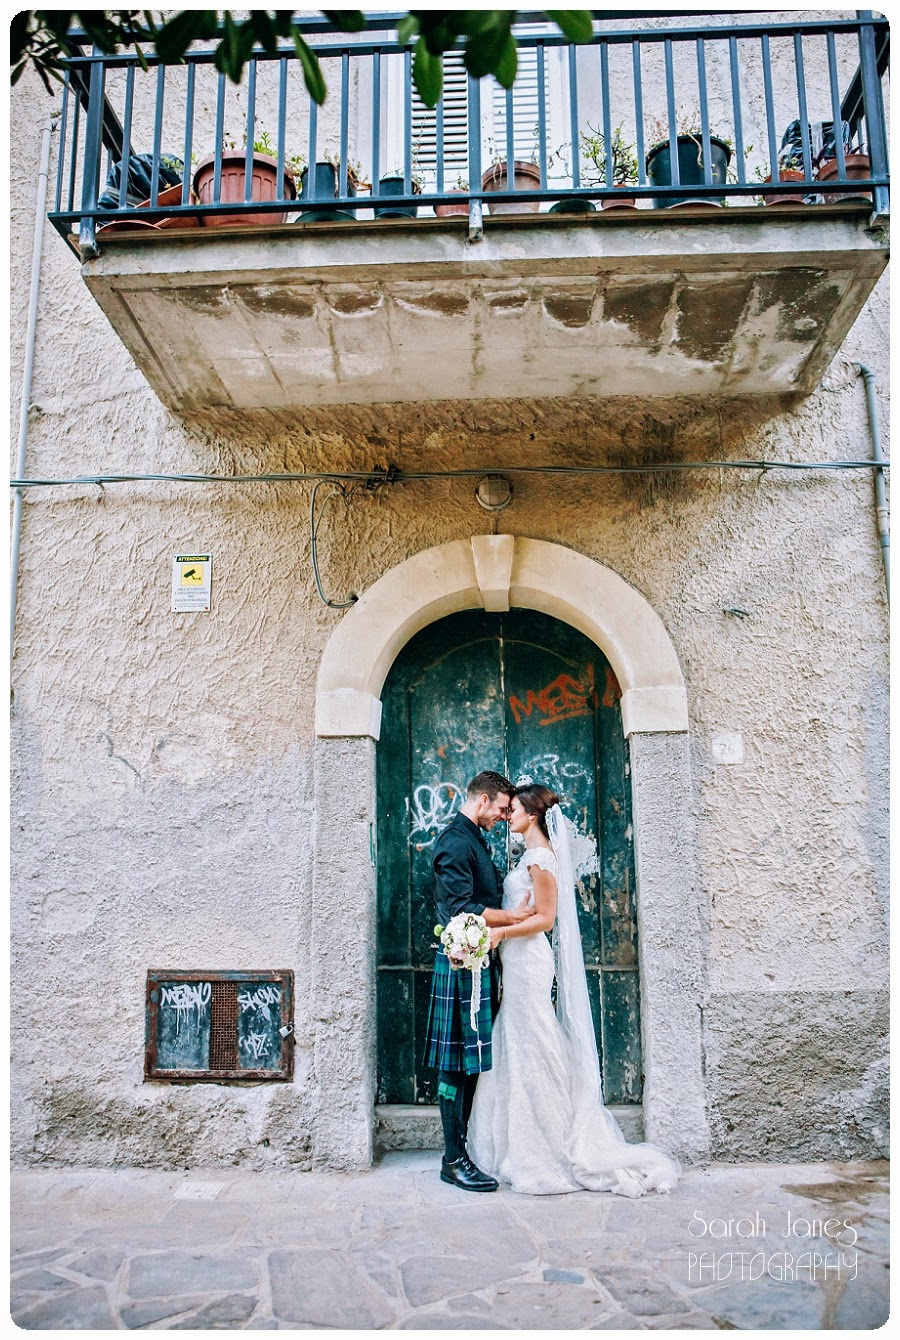 Italy%2BWedding%2Bphotography%2C%2BMy%2Bsecret%2BItaly%2Bwedding%2Bphotography%2C%2BSarah%2BJanes%2Bphotography%2C%2Bdestination%2Bphotography_0064.jpg